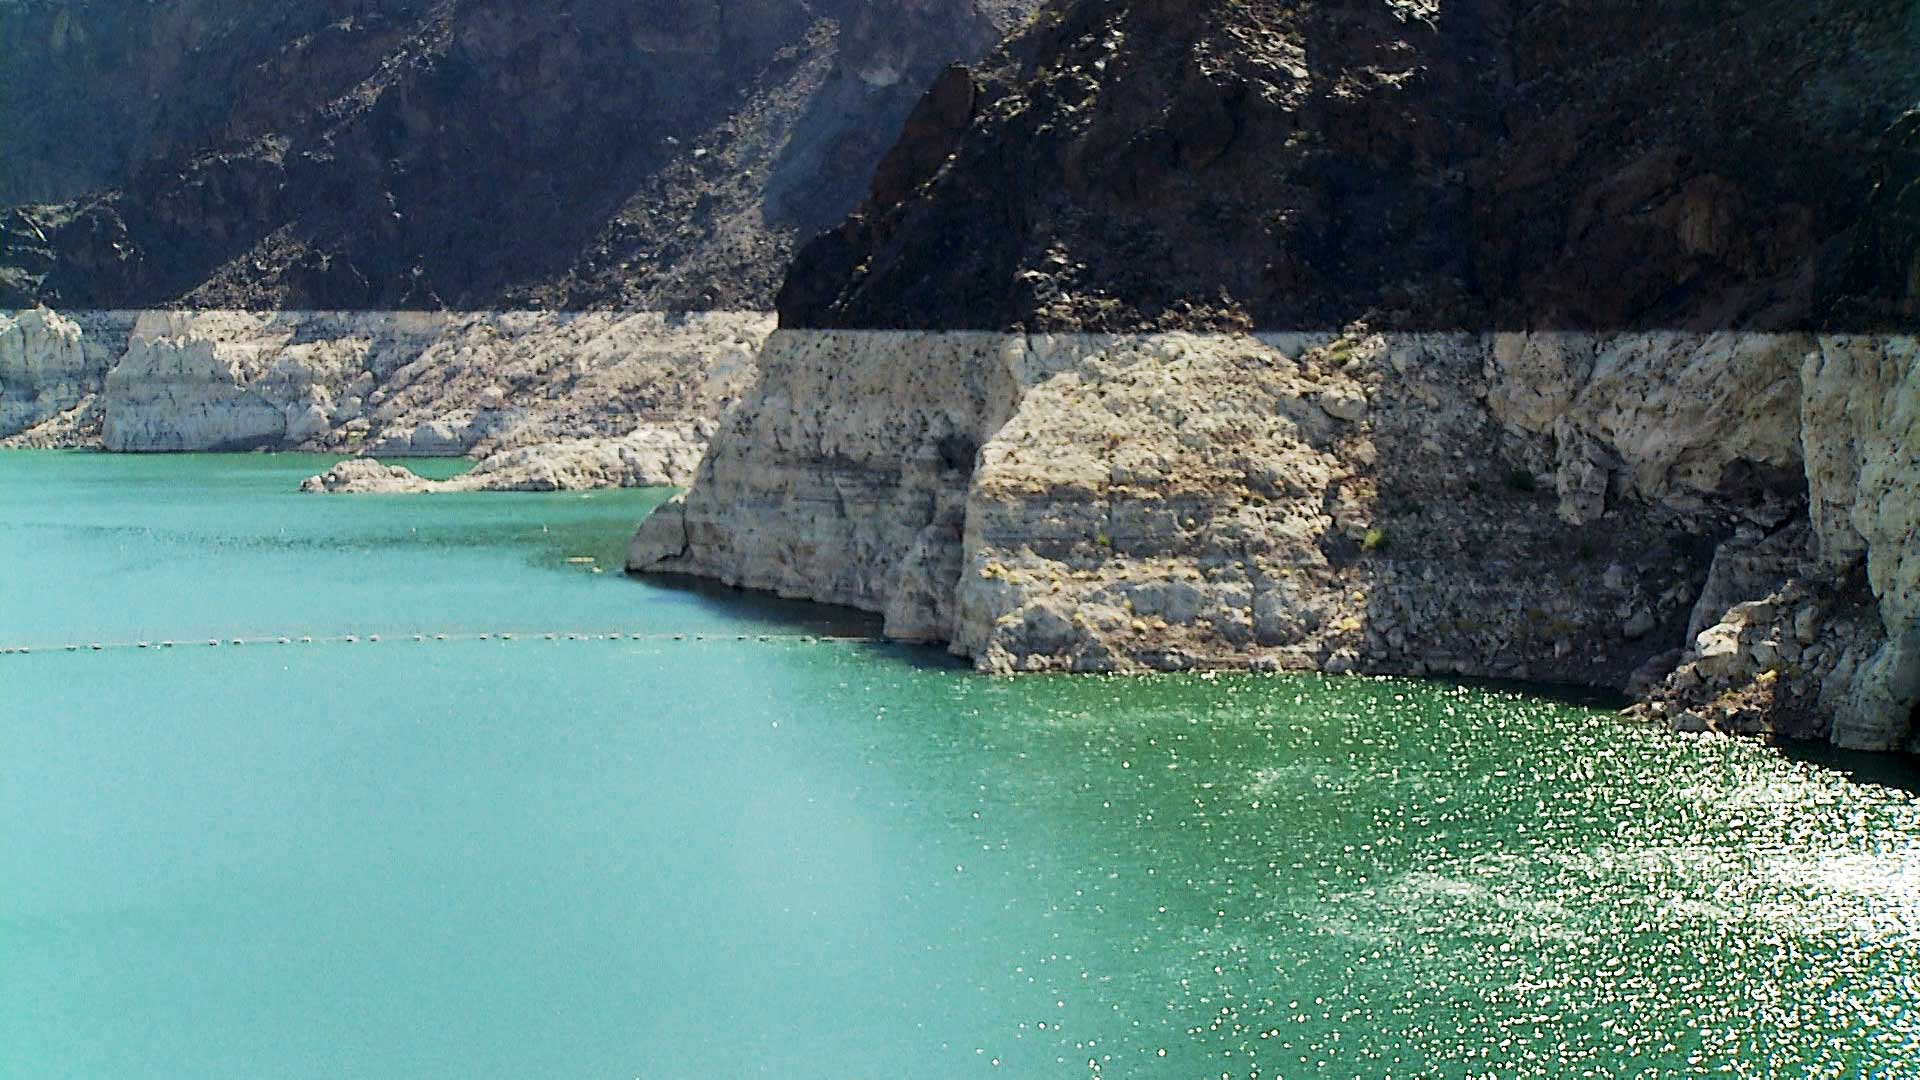 The so-called bathtub ring in Lake Mead.